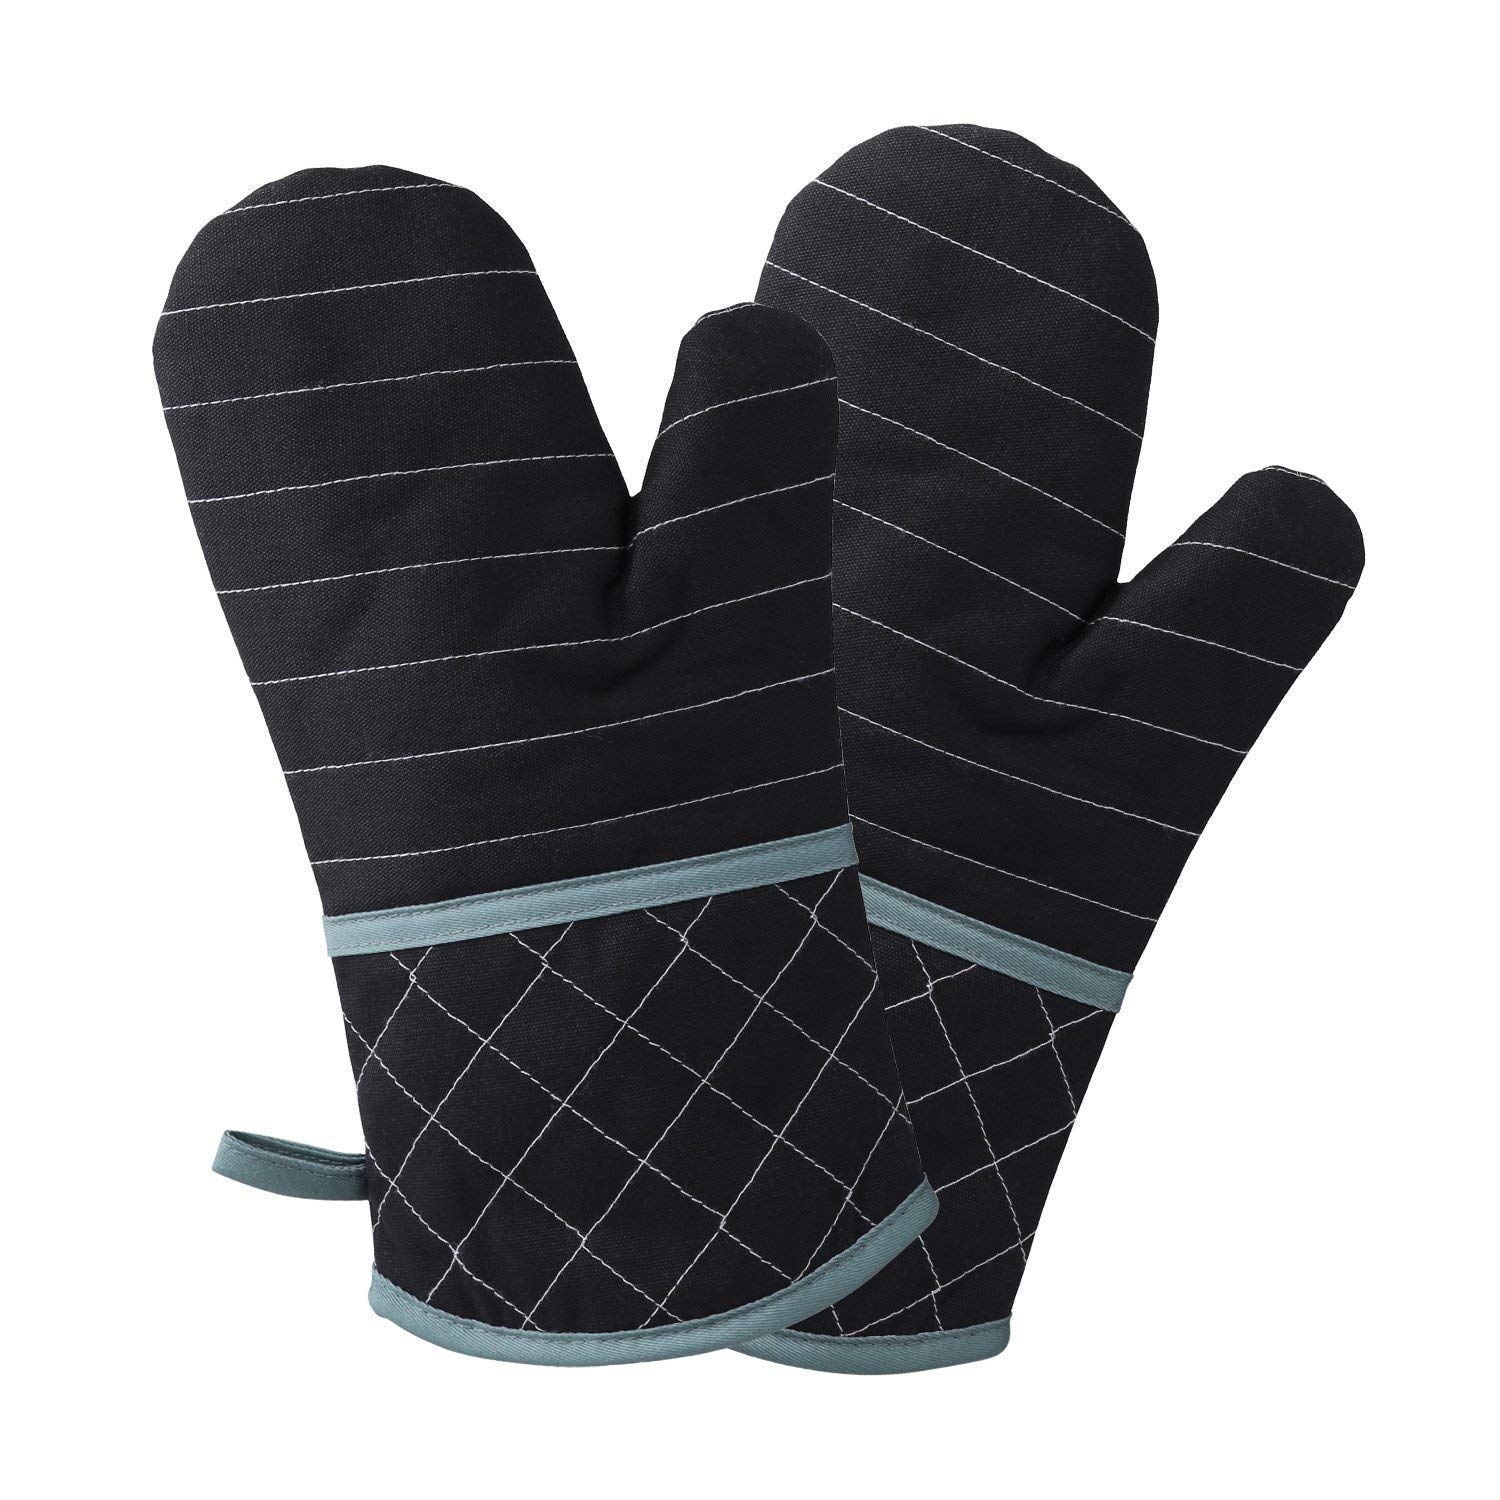 Oven Glove - Heat Resistant Gloves up to 260 ℃, Non-slip Grilling Gloves, Suitable for Cooking, Baking, Grilling, Oven Mitts, Black, 1 Pair